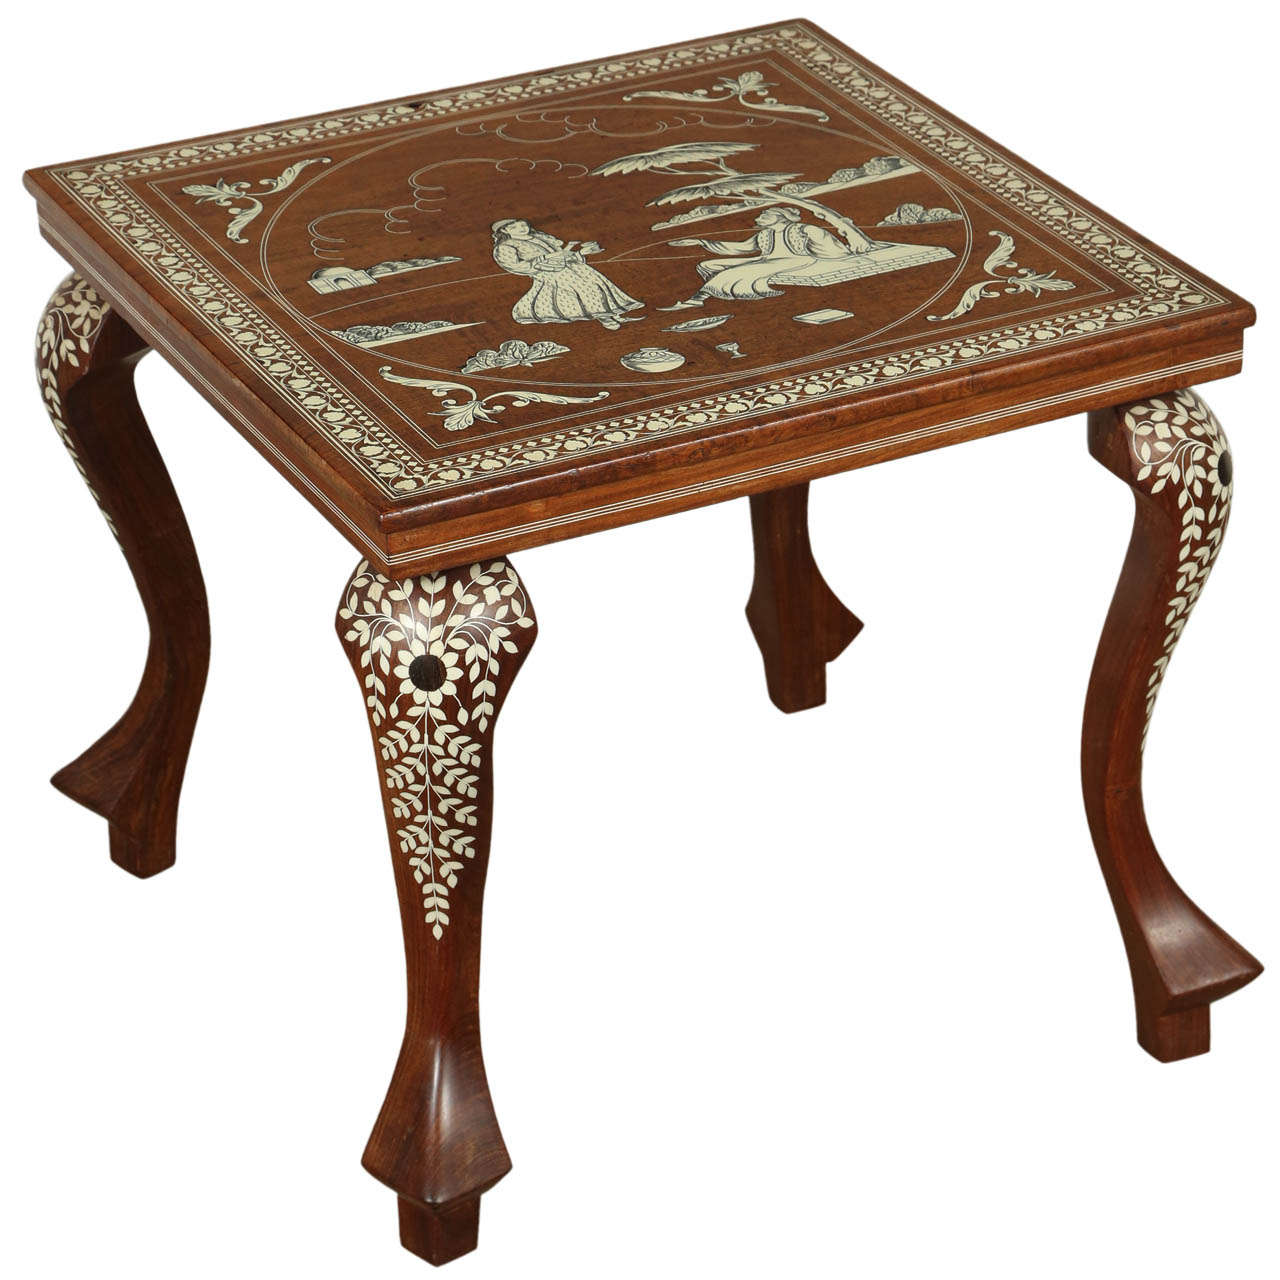 real wood end tables the fantastic nice inlaid anglo bone octagonal side table for square antique storage boxes living room flower coffee black oak furniture garden occasional